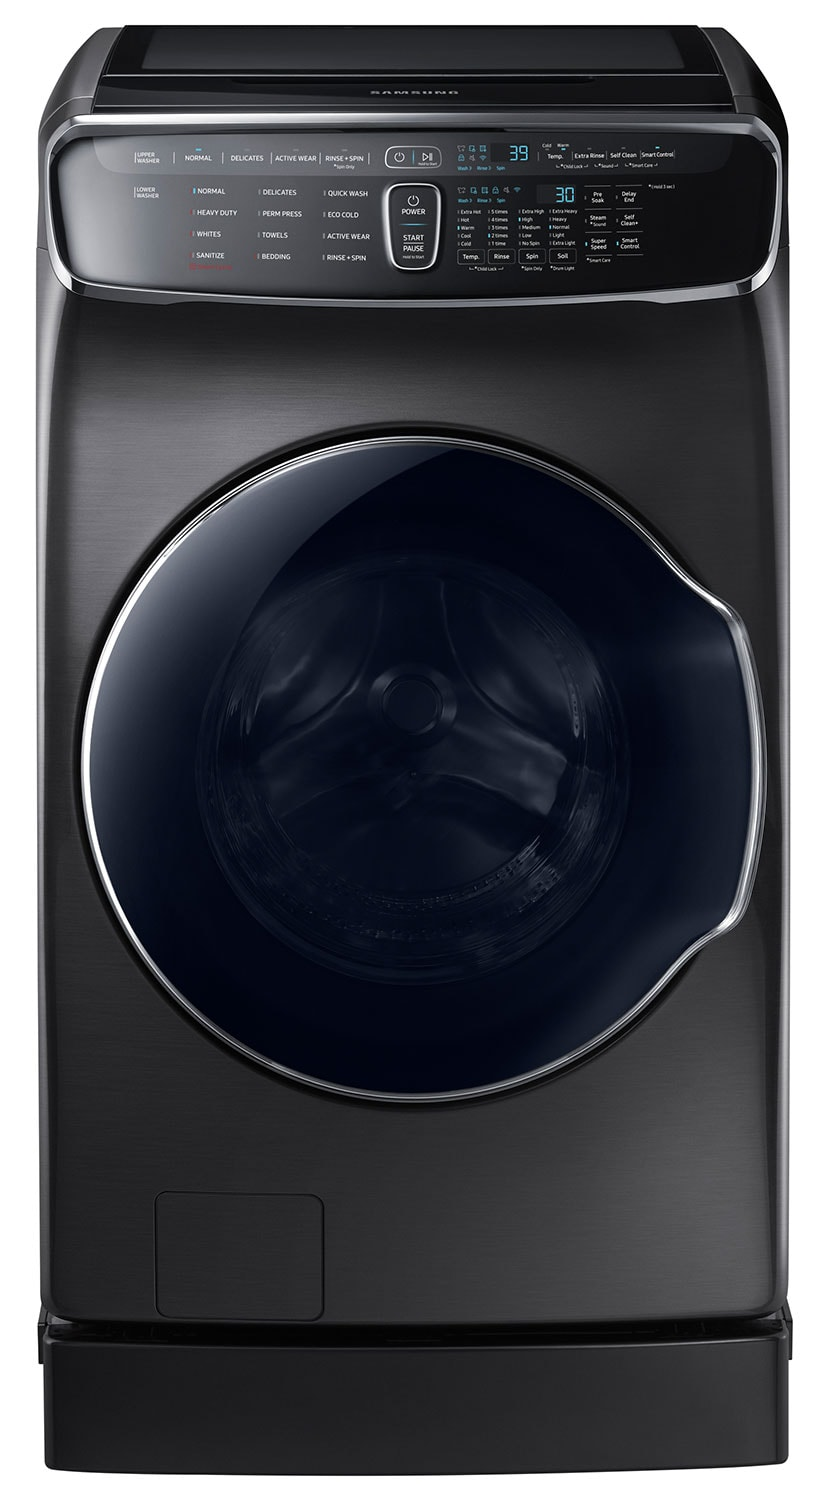 Samsung Black Stainless Steel Washer (6.9 Cu. Ft. IEC) - WV60M9900AV/A5